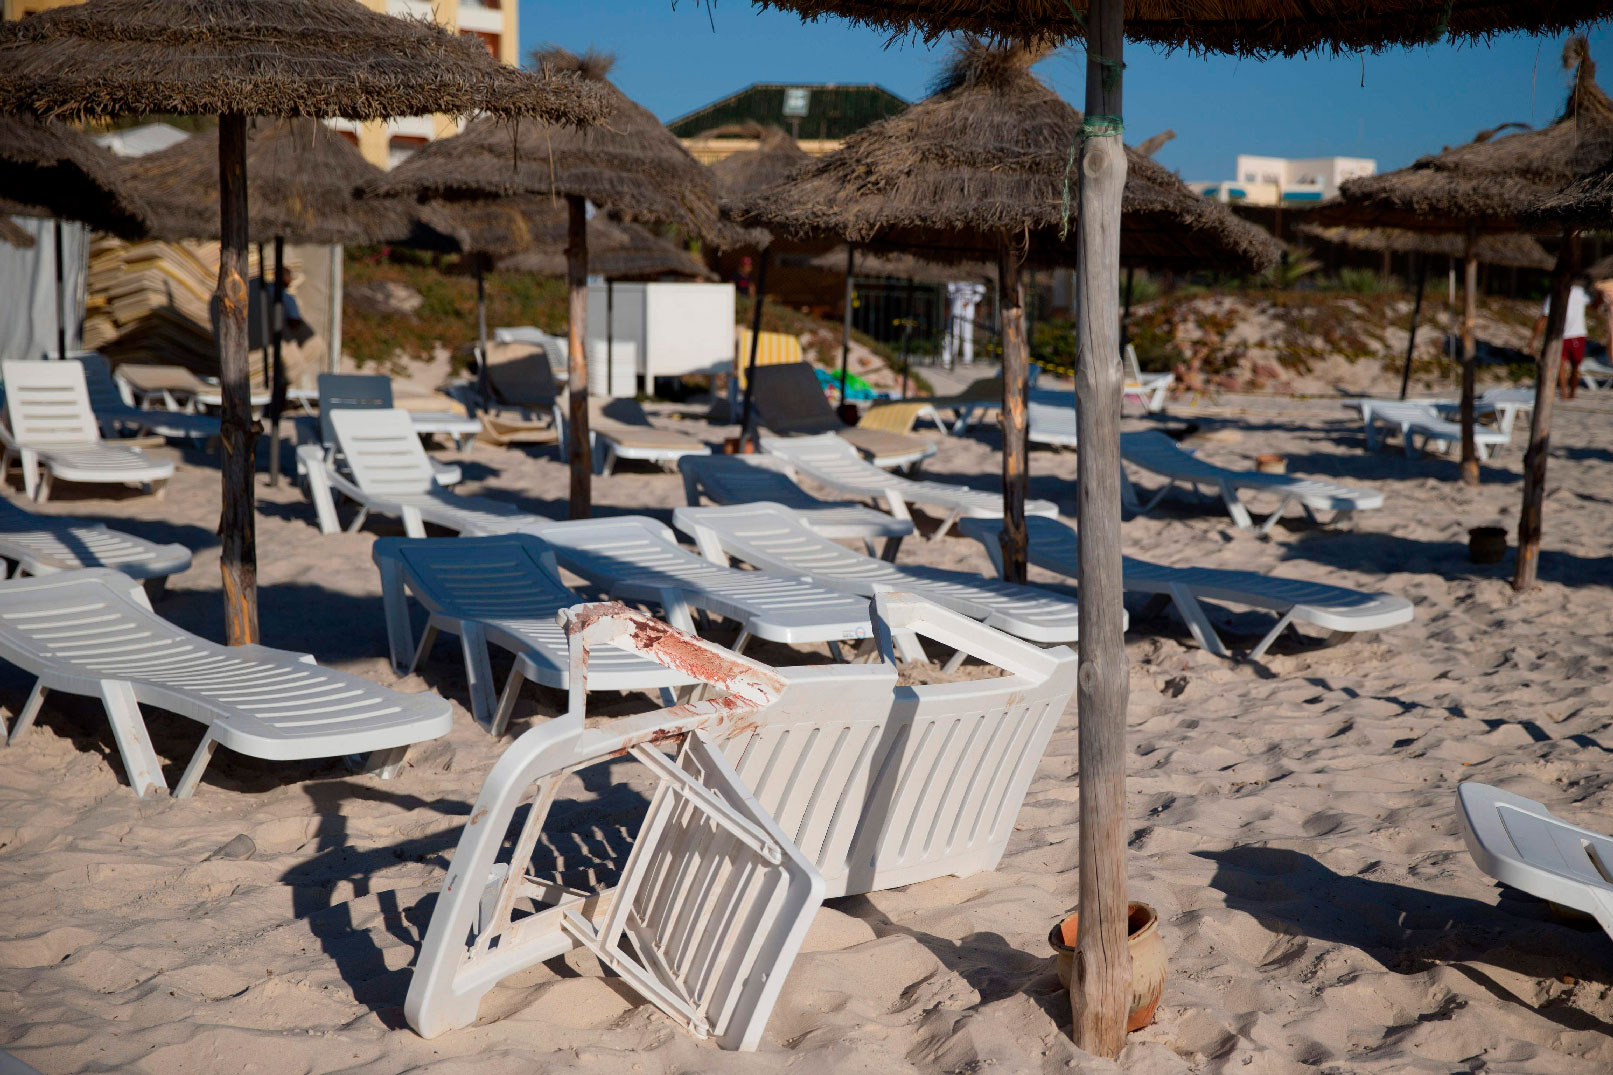 In this file photo taken on June 27, 2015, blood stains are seen on a deckchair at the beach of the Riu Imperial Marhaba Hotel, at the site of a shooting attack, in Port el Kantaoui, on the outskirts of Sousse south of the capital Tunis.